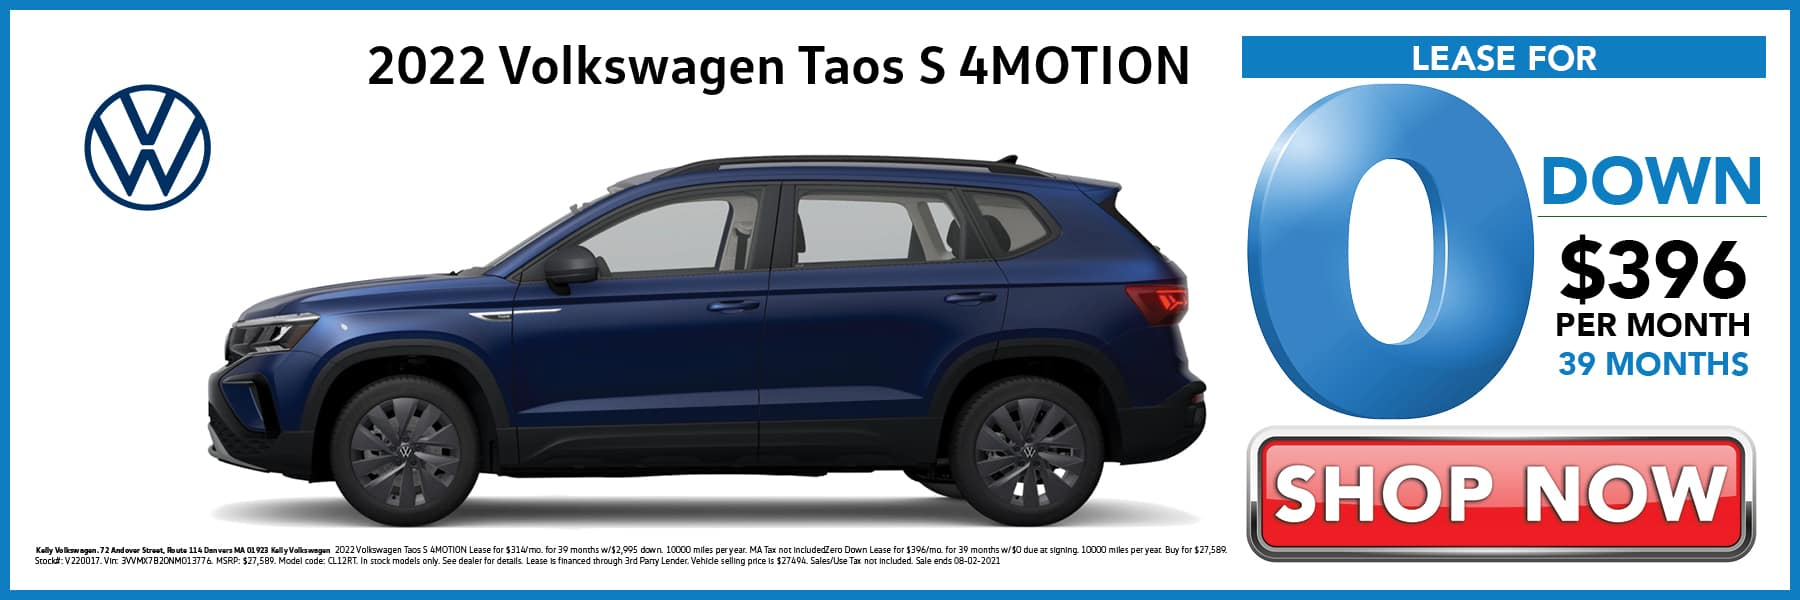 2022 Volkswagen Taos S Lease for 0 Down then $396 per Month for 39 Months